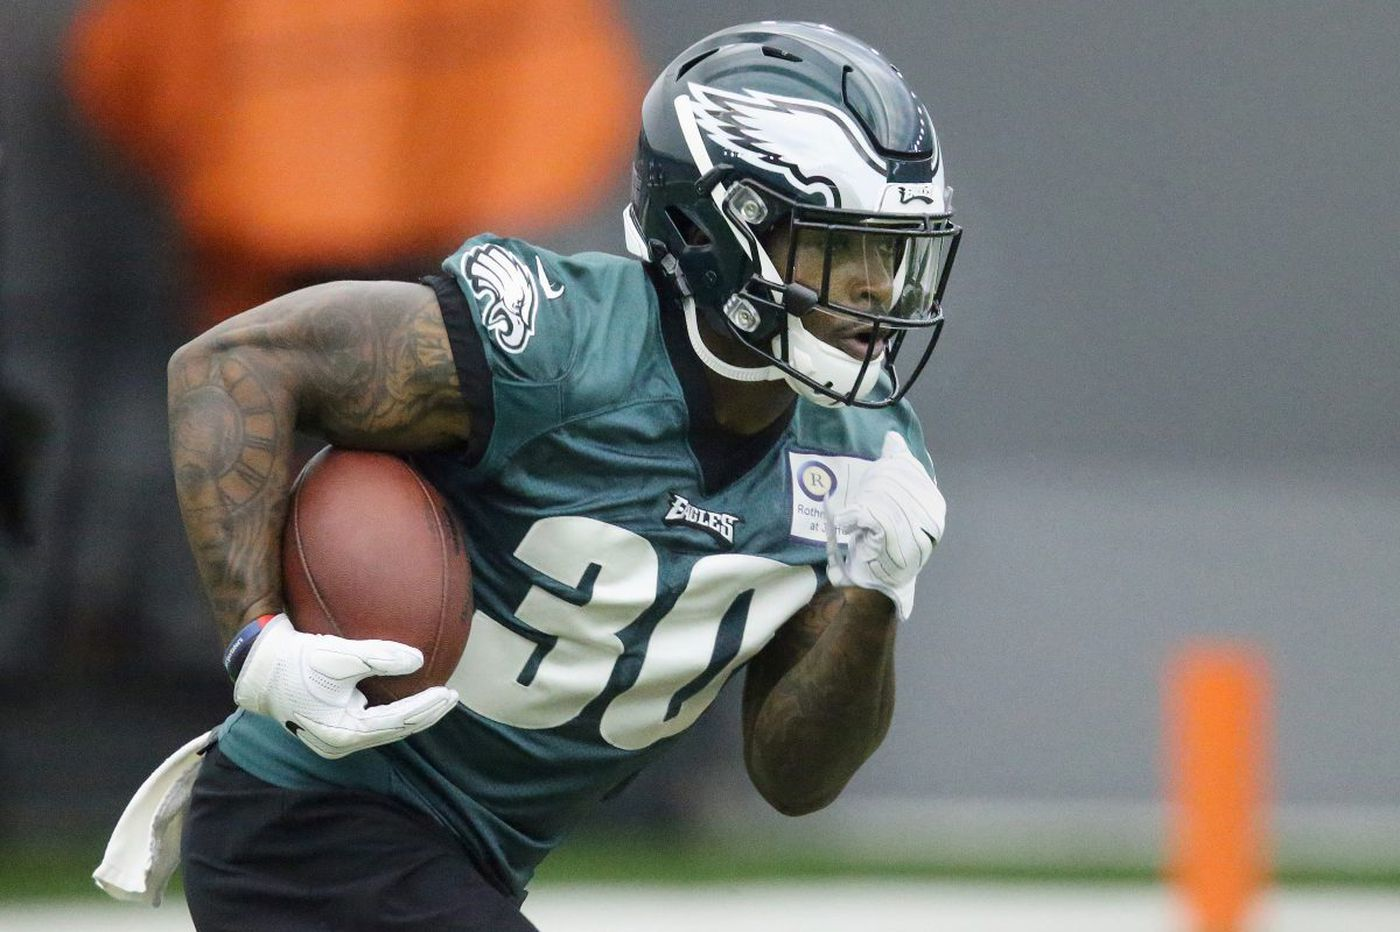 Corey Clement, one year after his meteoric rise, is ready to grow his role with Eagles